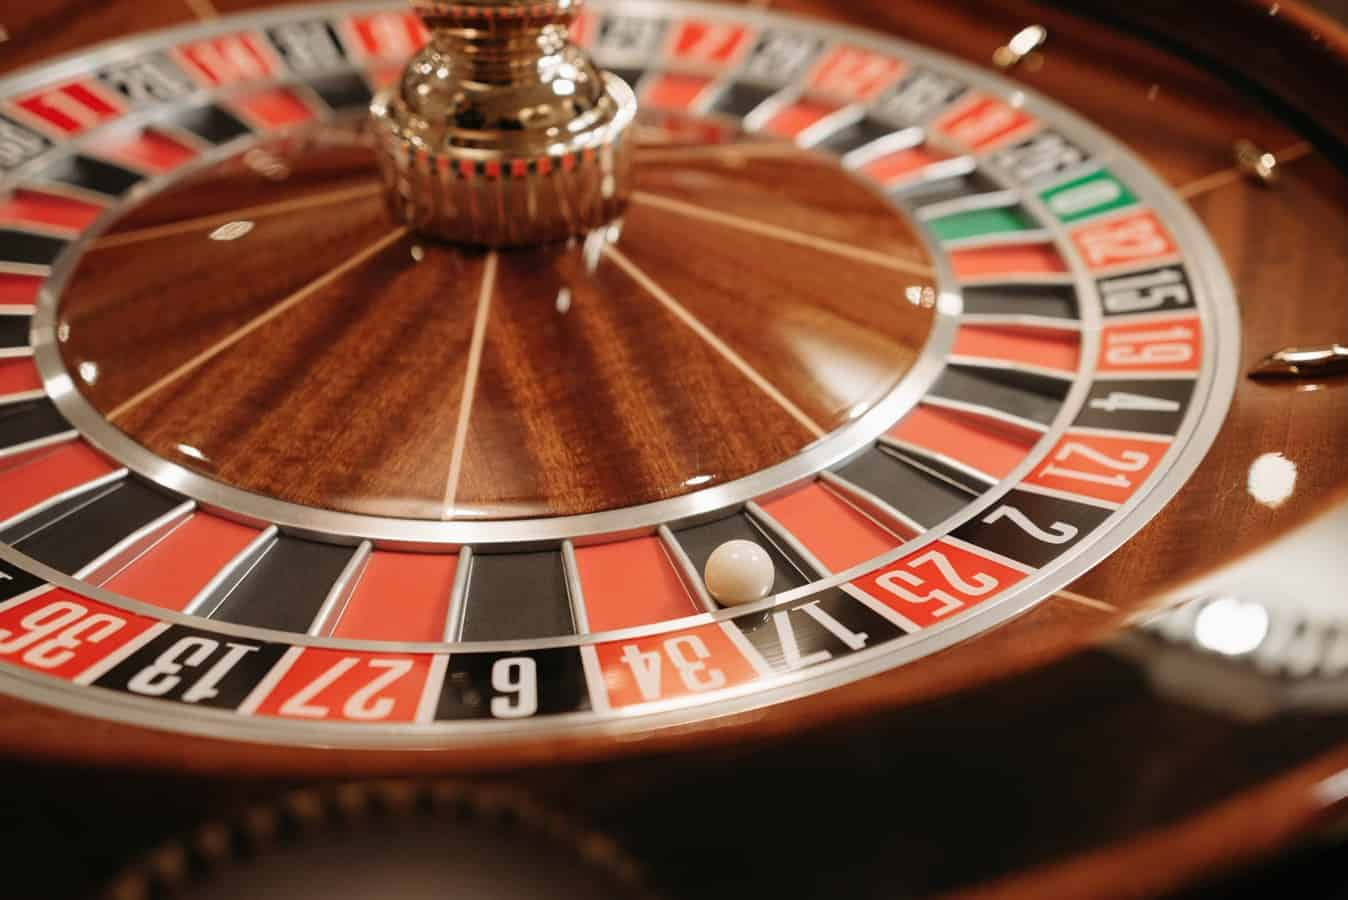 Play casino games using your phone